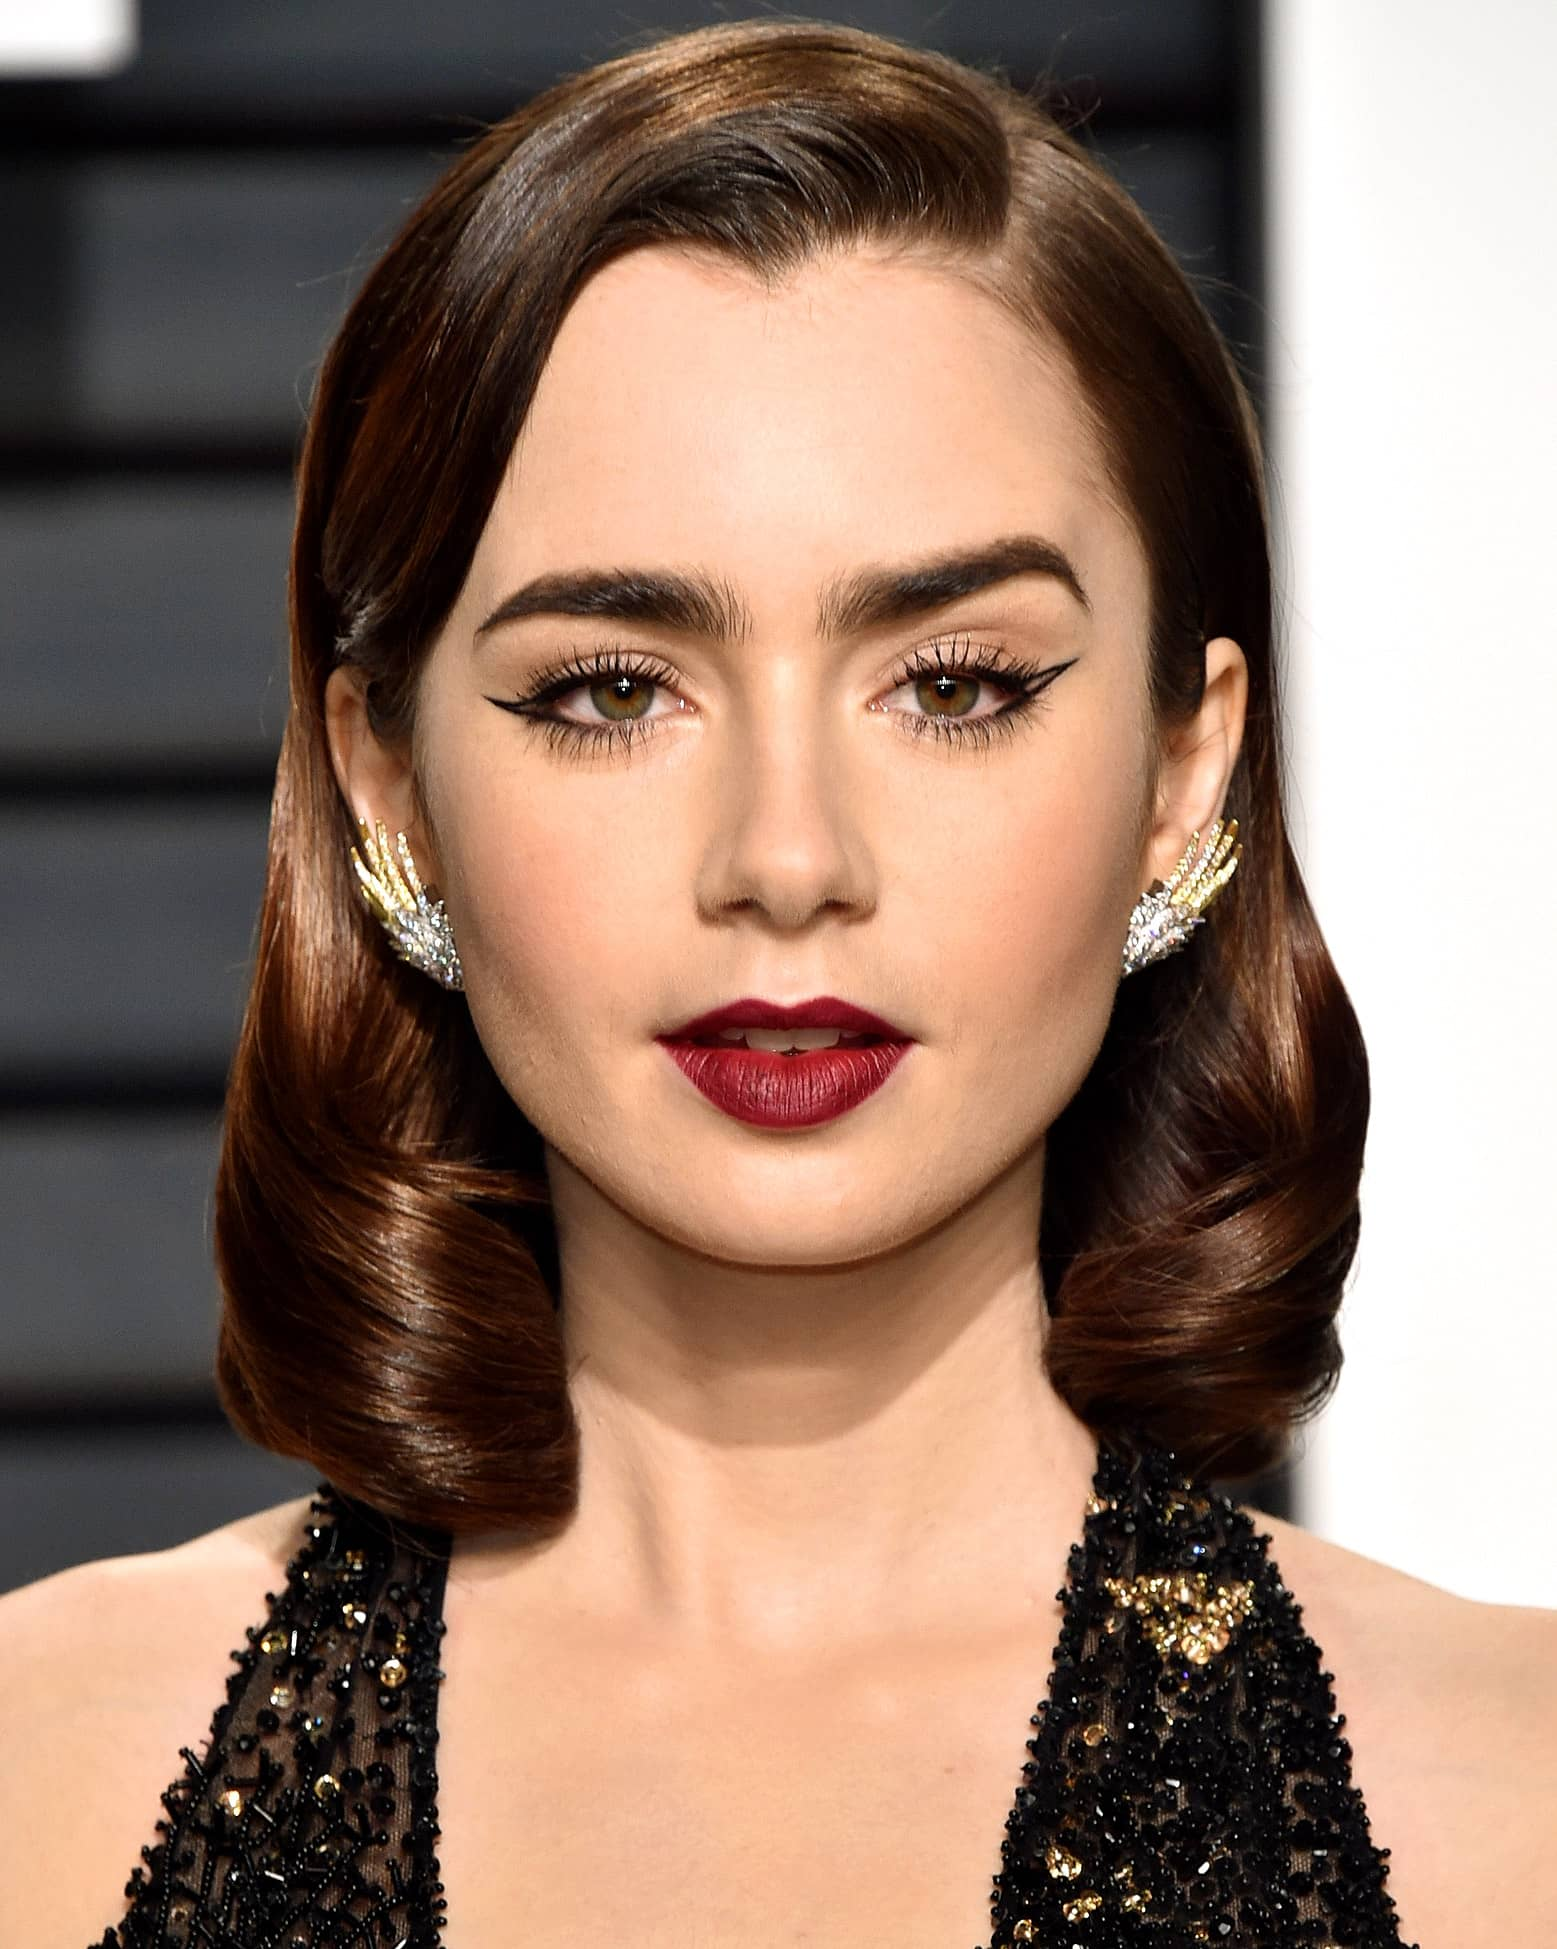 Lily Collins - Bio, Who is She Dating? -Husband, Family ...